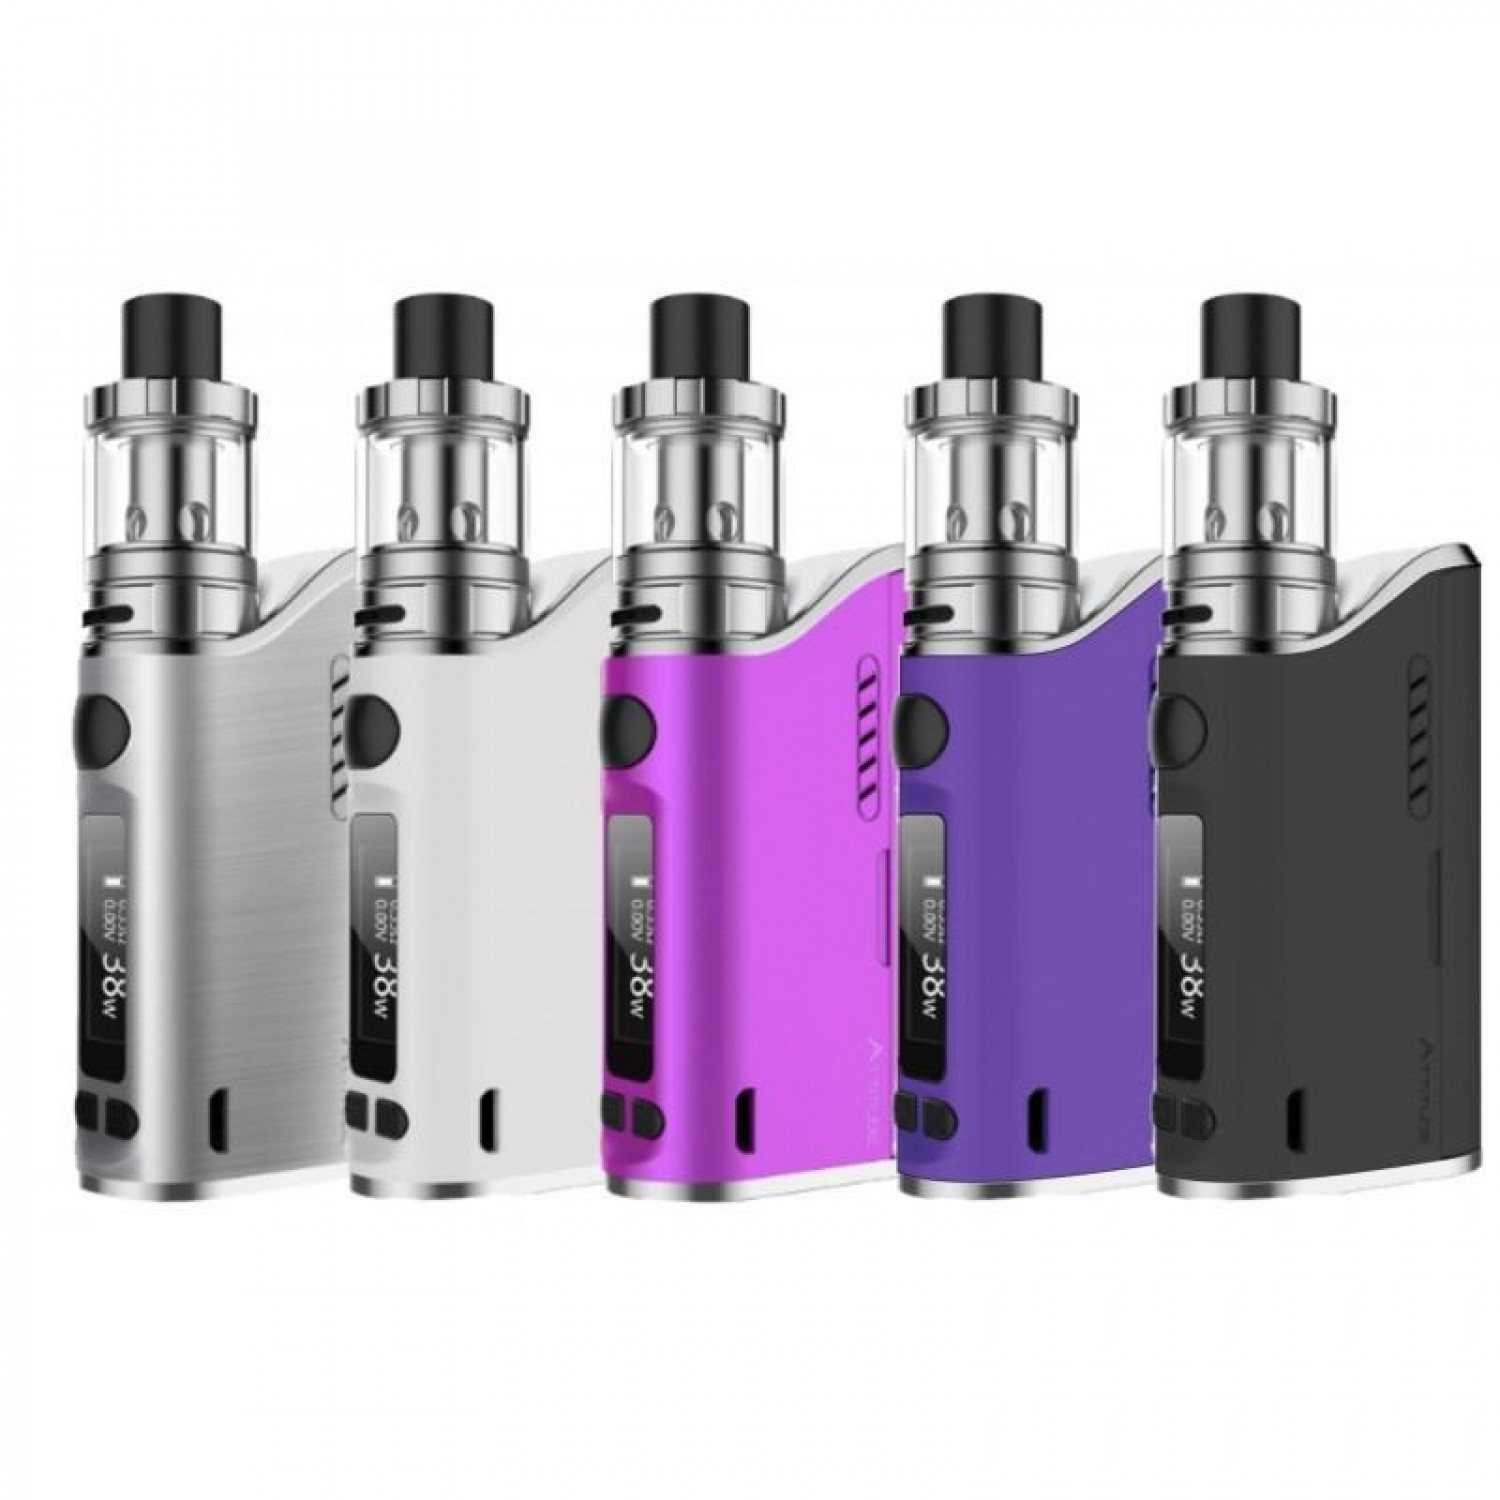 E-Cig Accessories at Cheap Price - Vape Supply Center Infographic